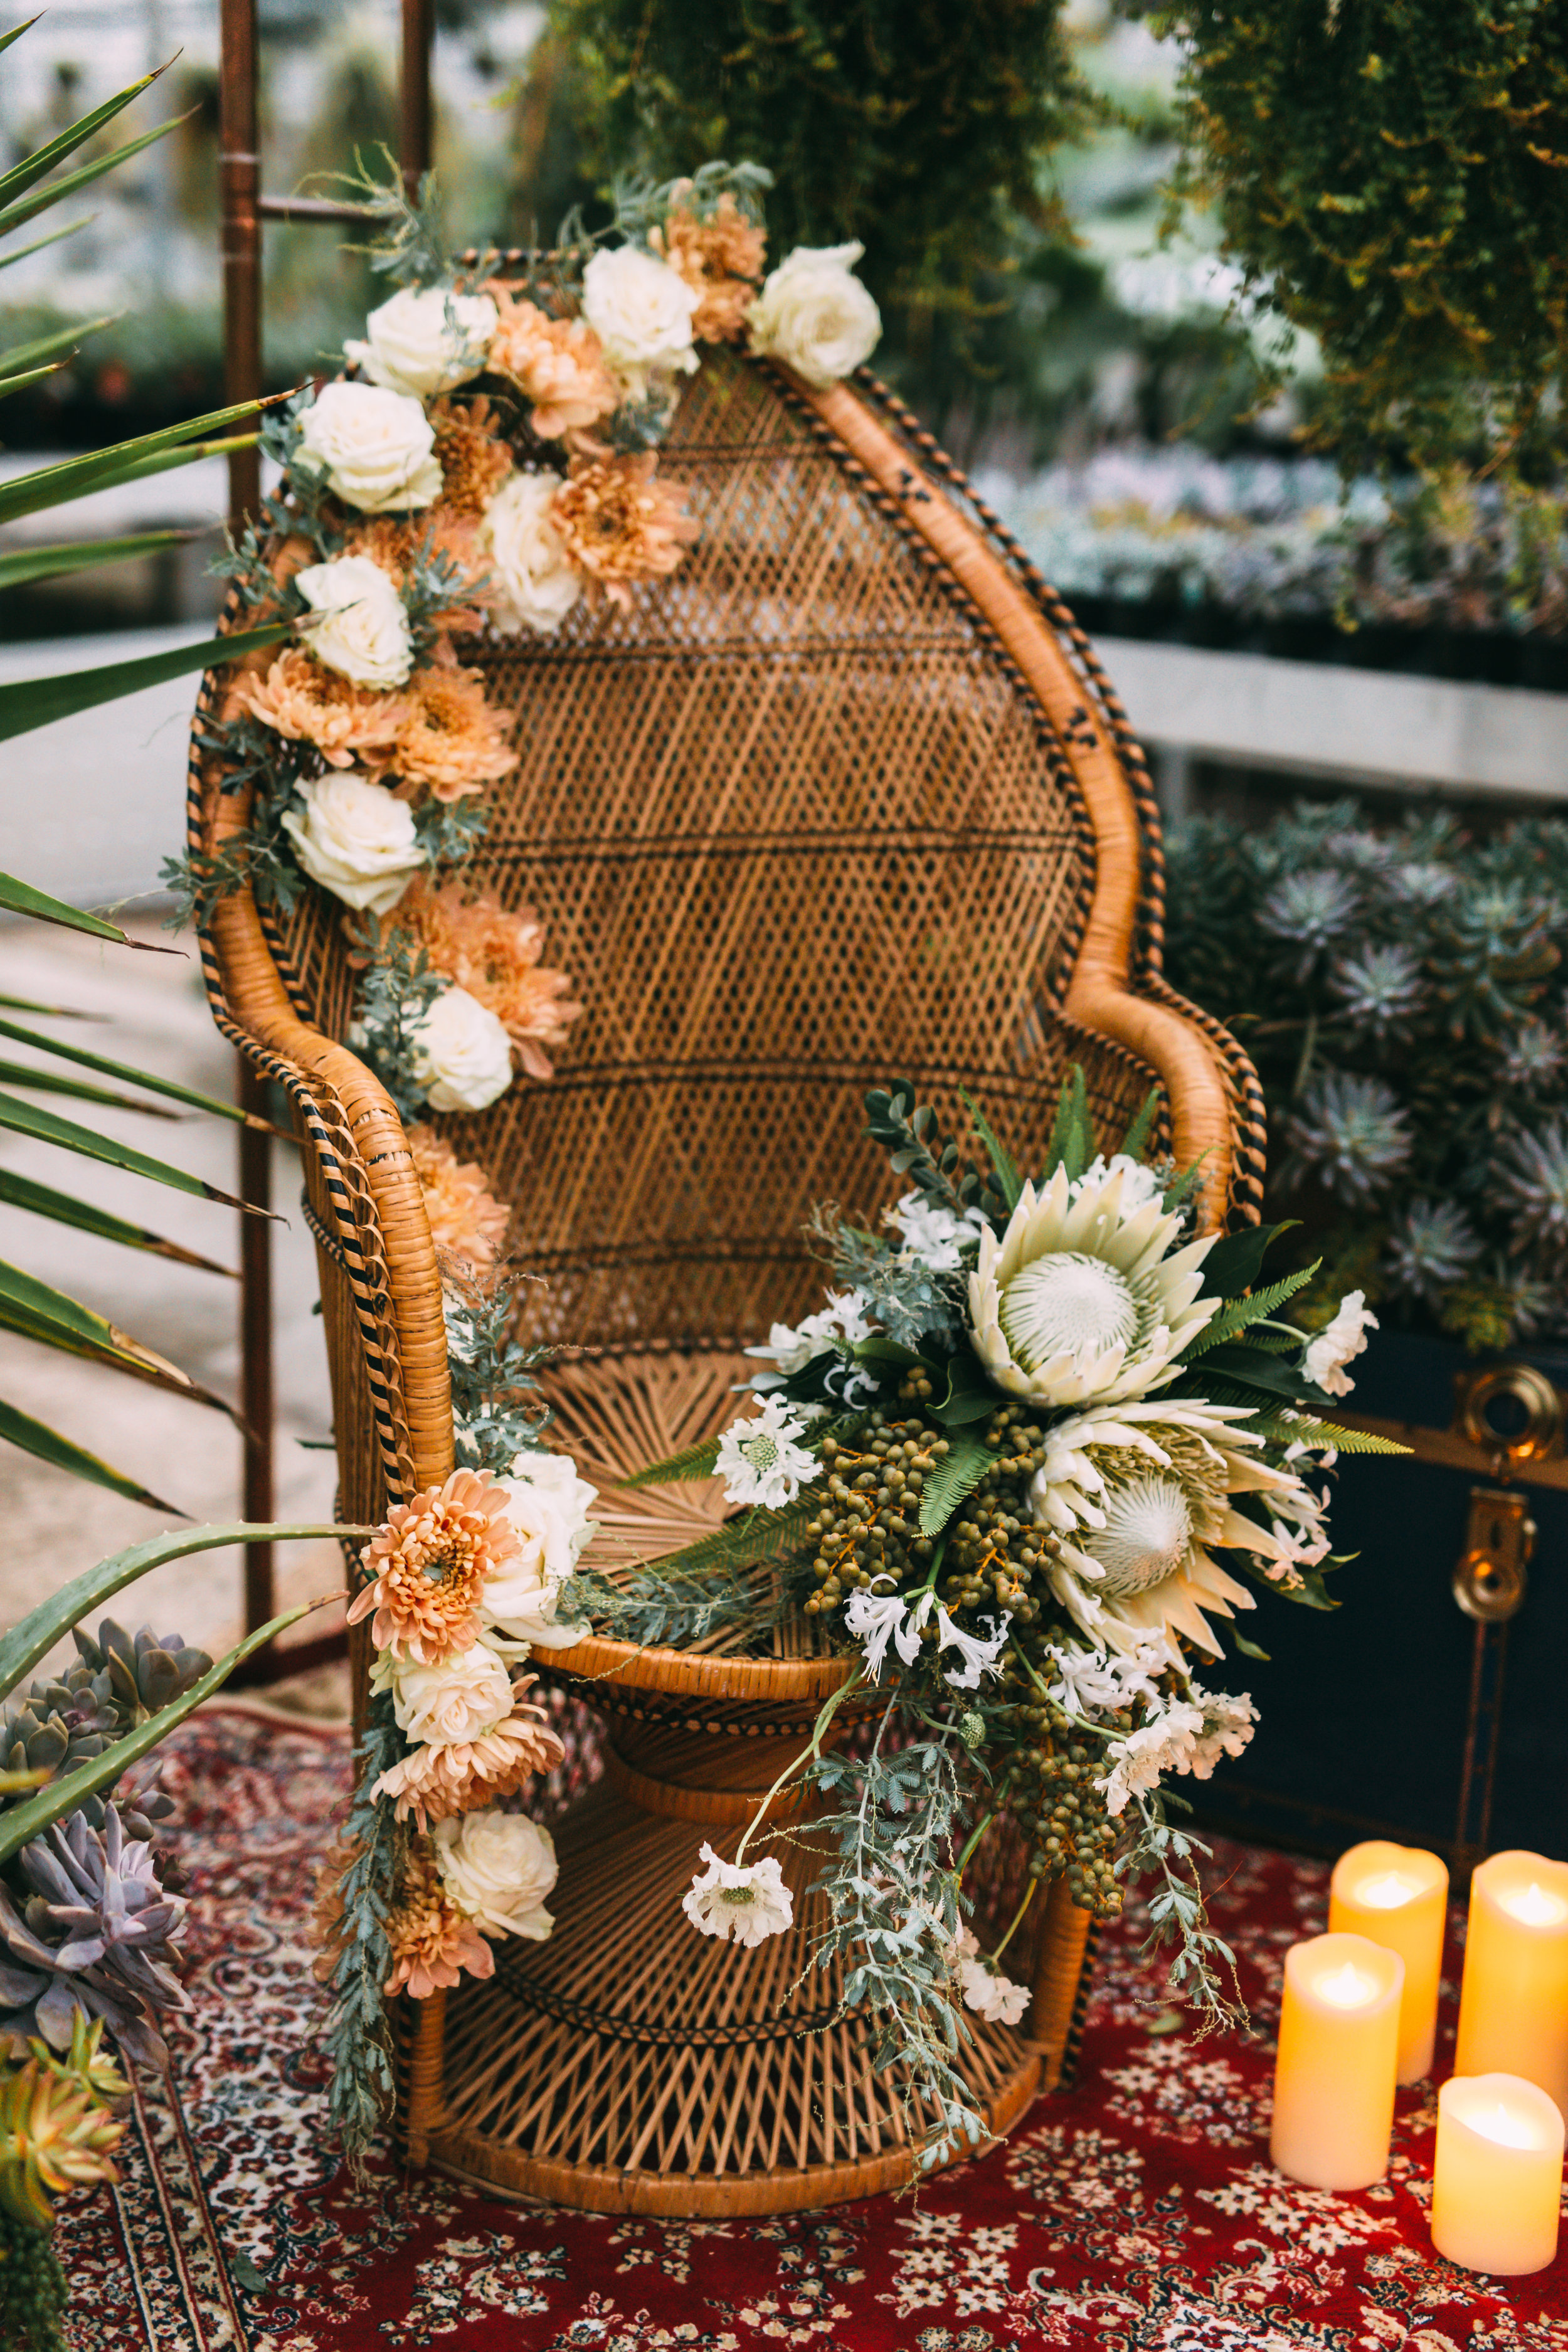 amanda cowley events niagara wedding planner free spirit styling bohemian style greenhouse peackcock chair eclectic style florals